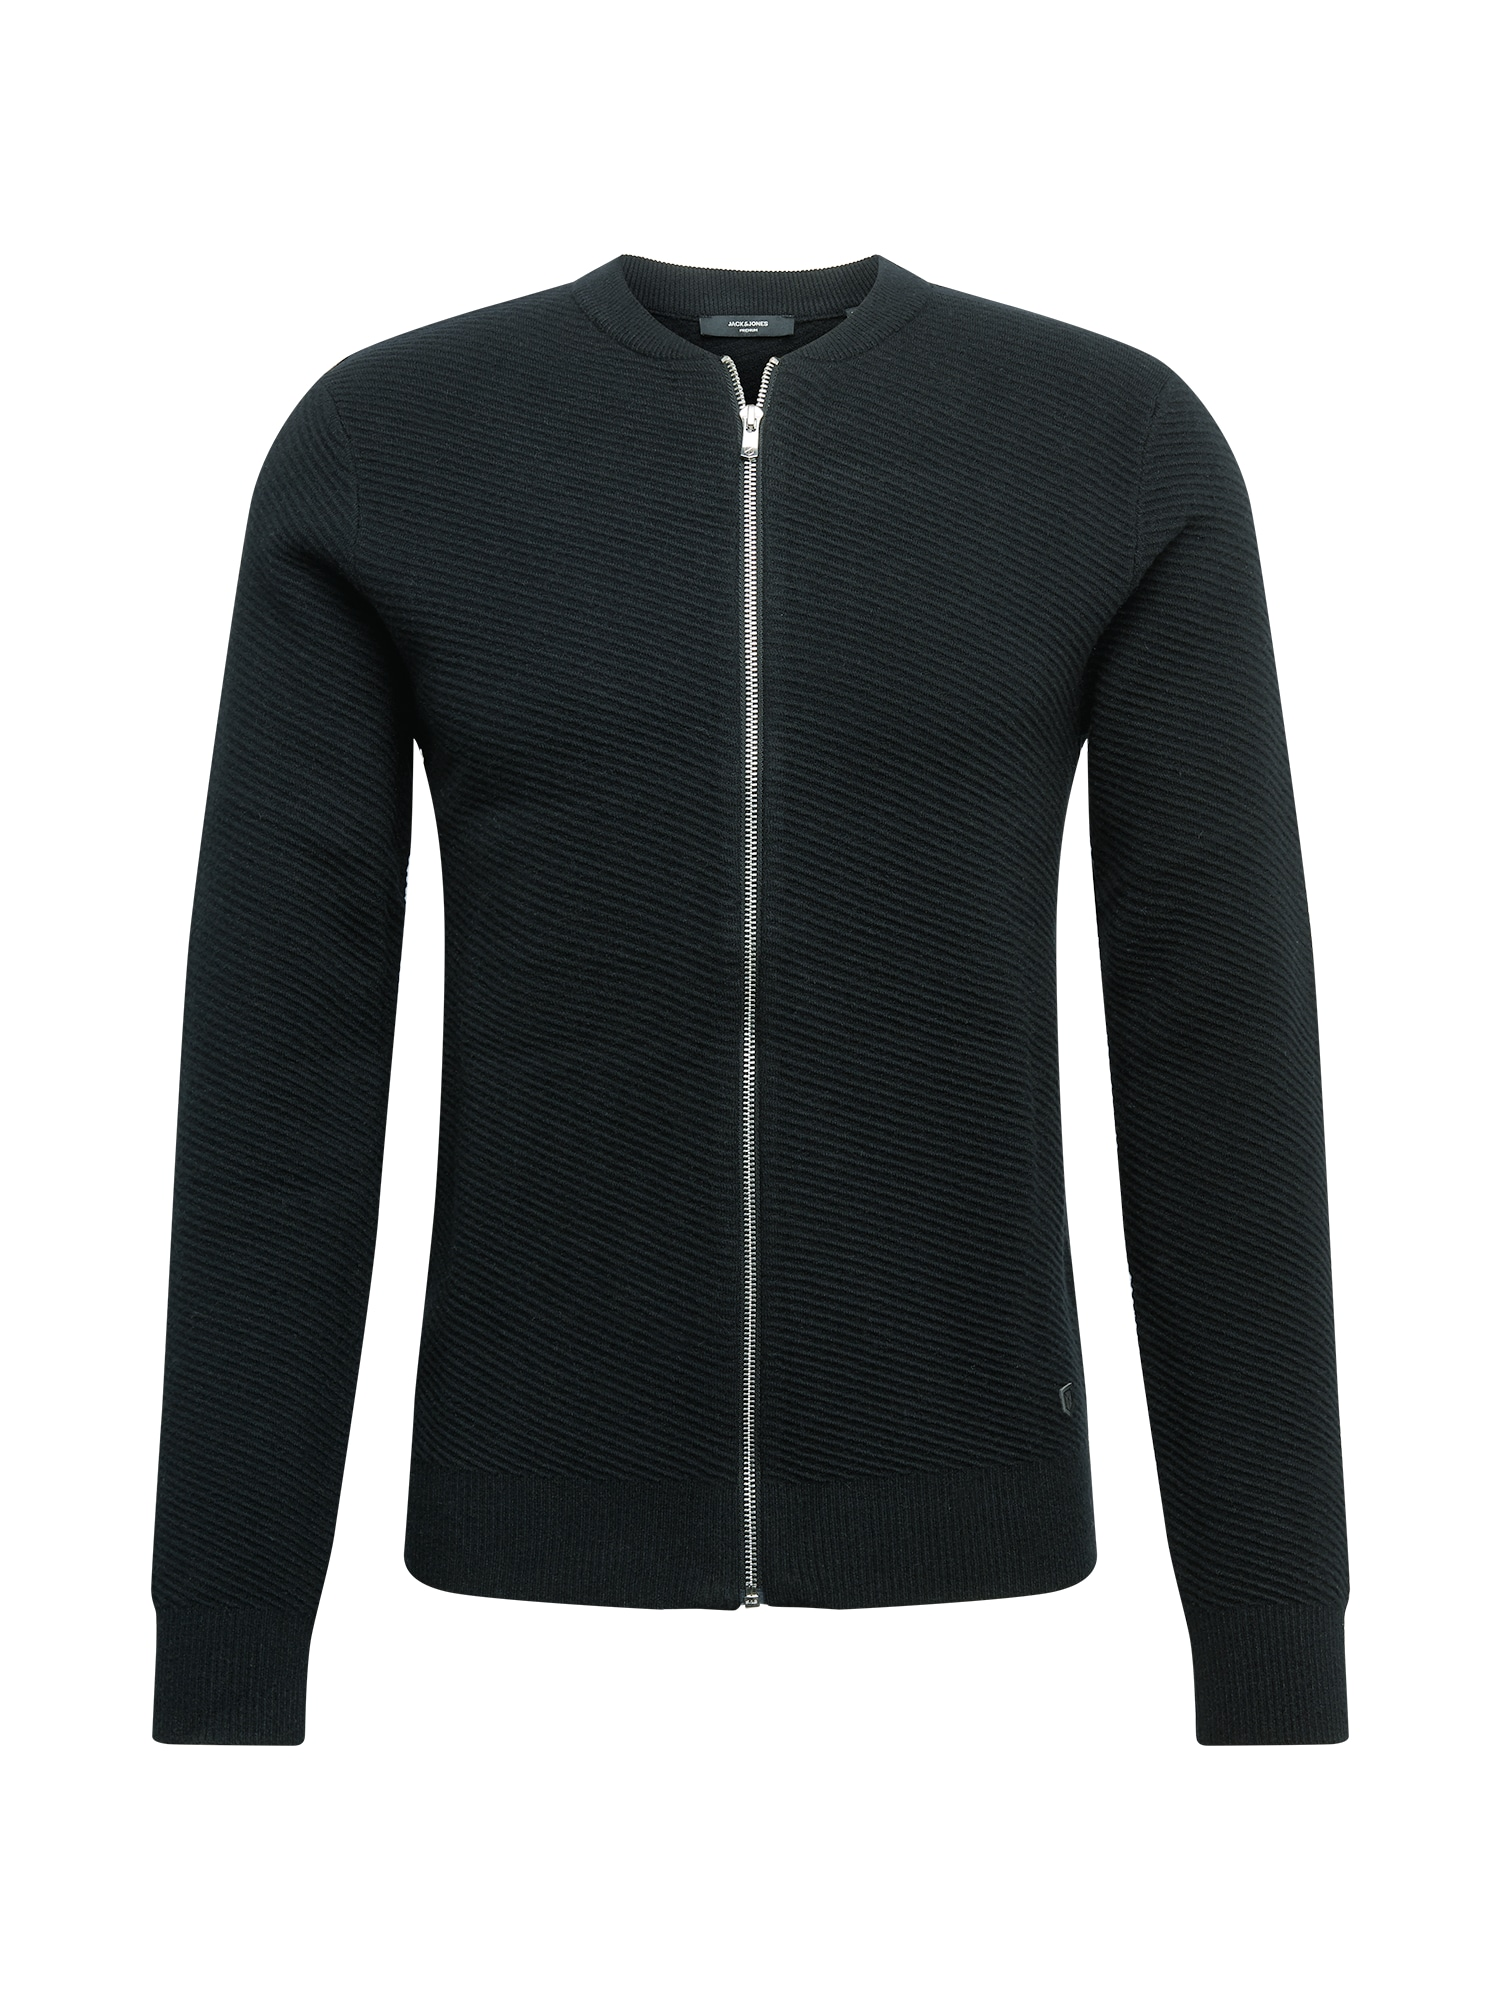 JACK & JONES Kardiganas 'WILL' juoda / pilka